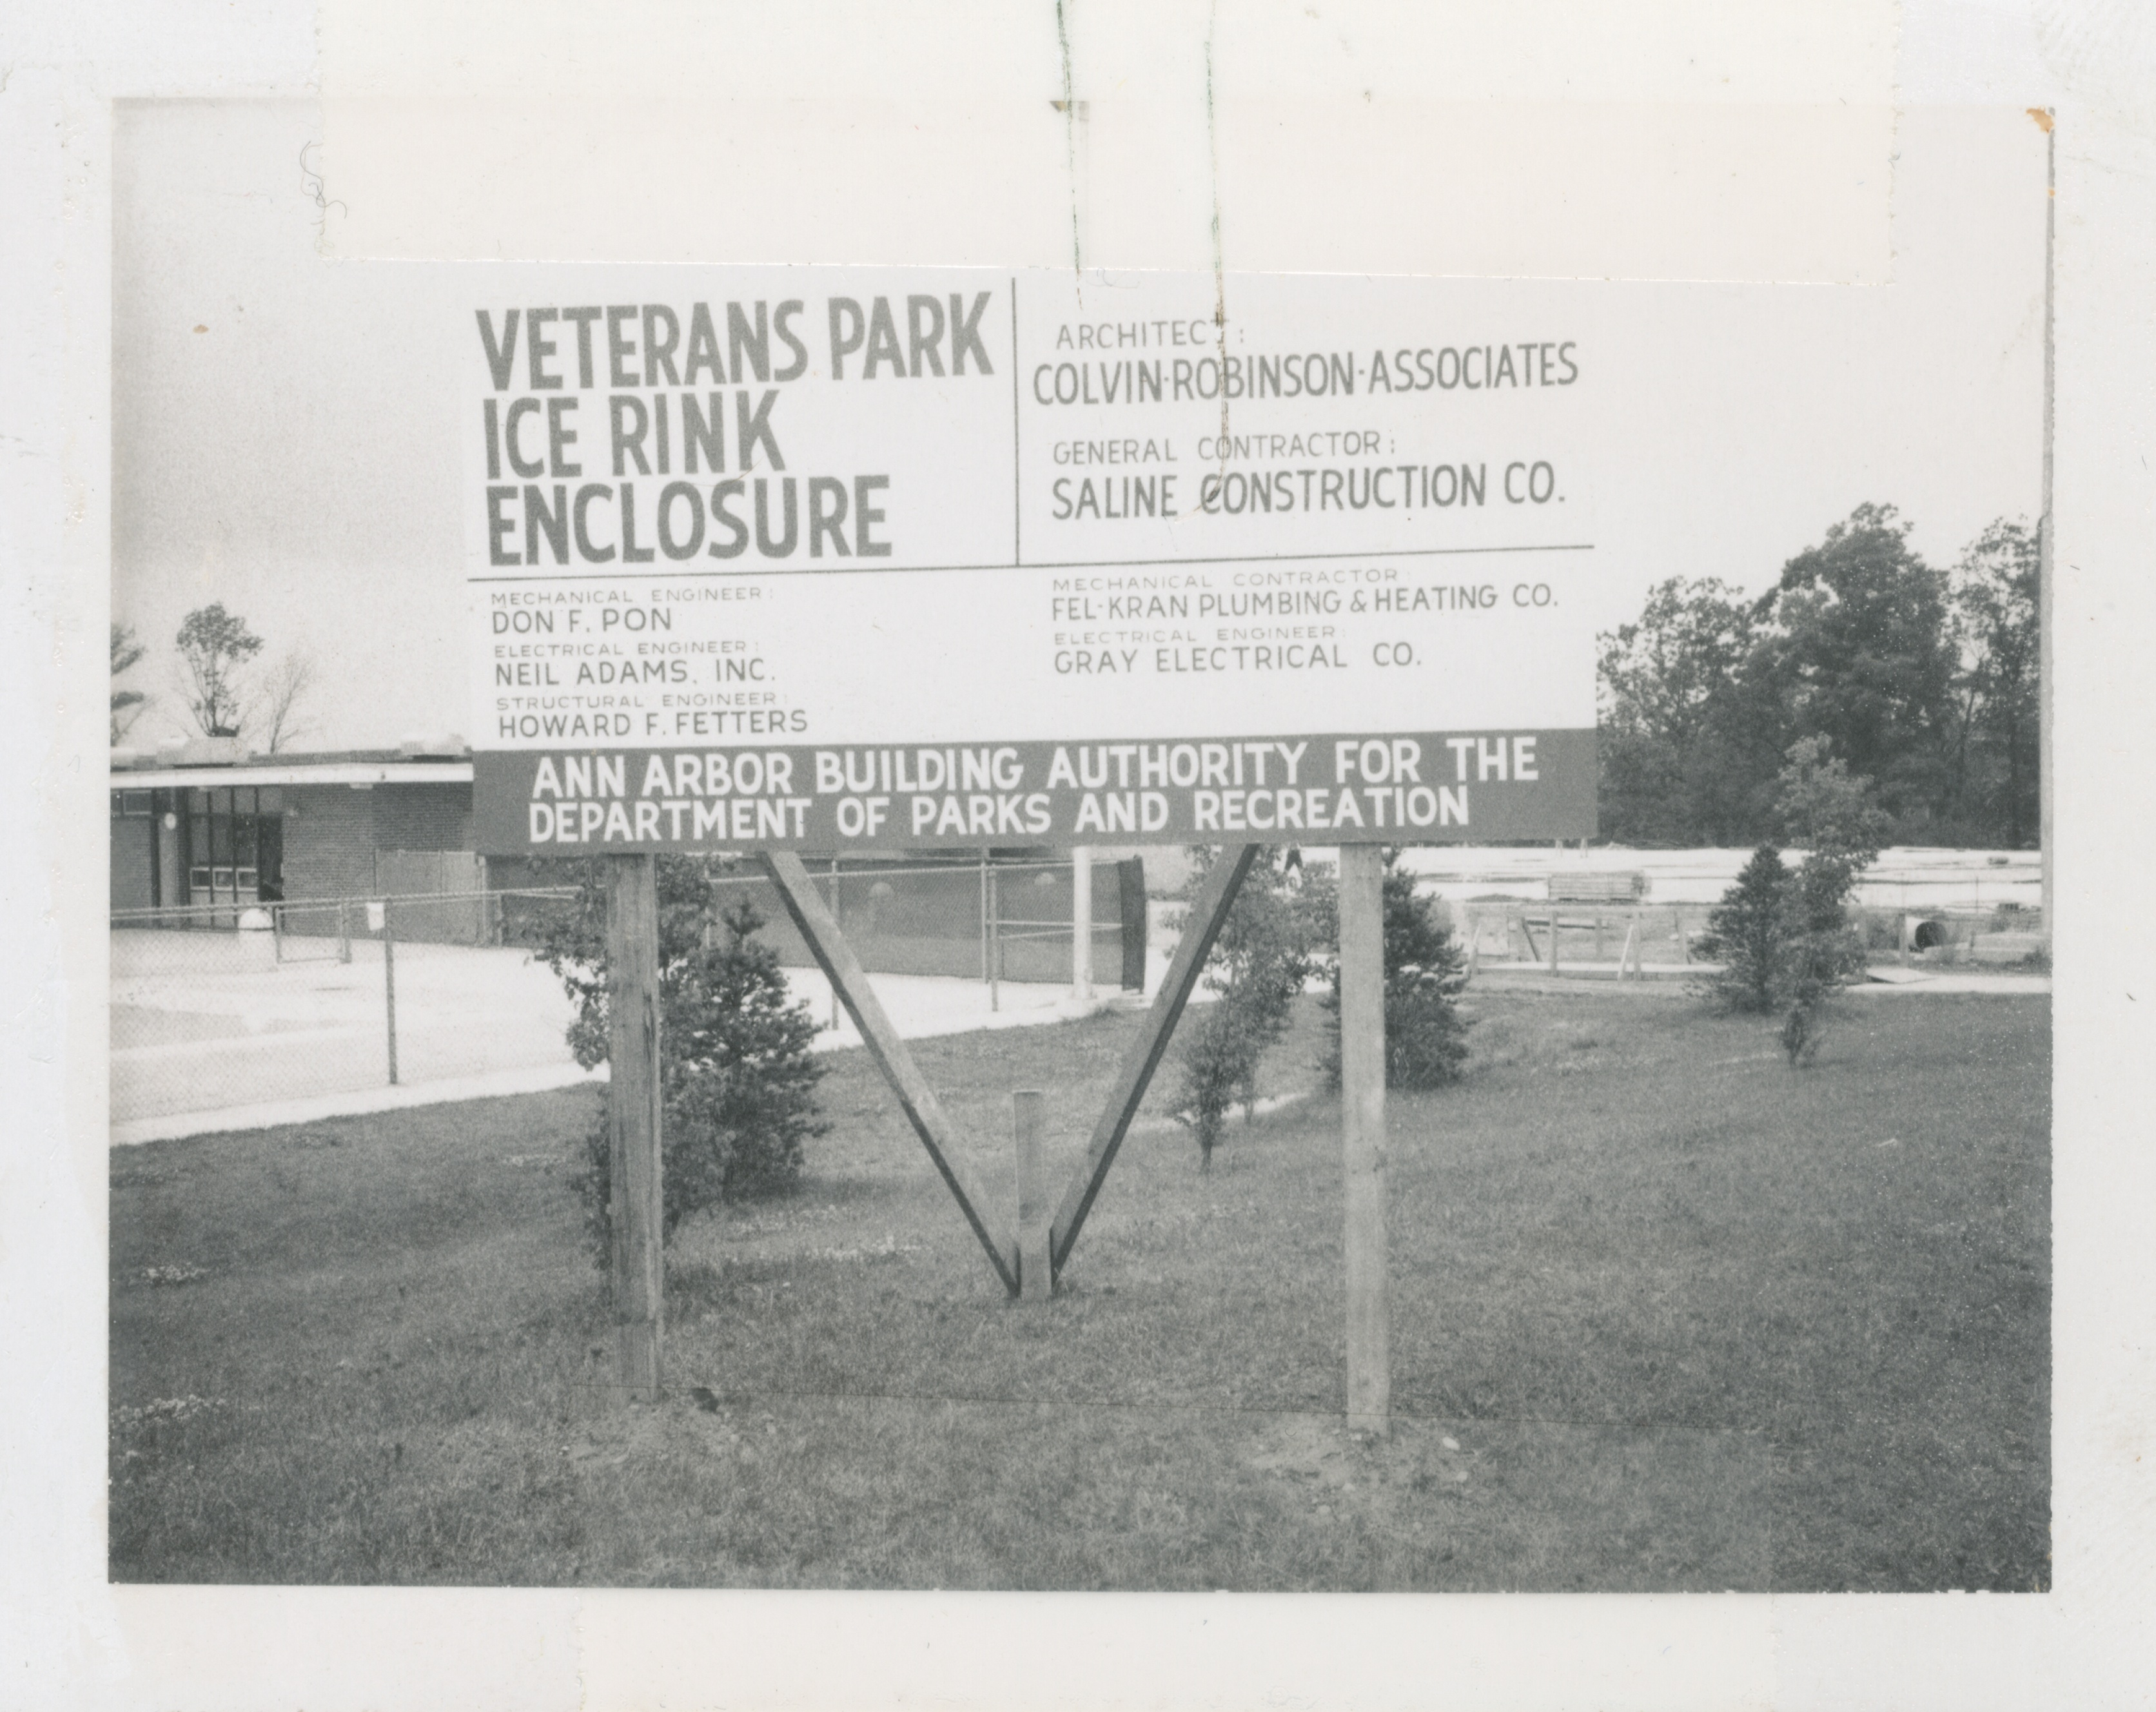 Veterans Park Ice Rink, 1972 image